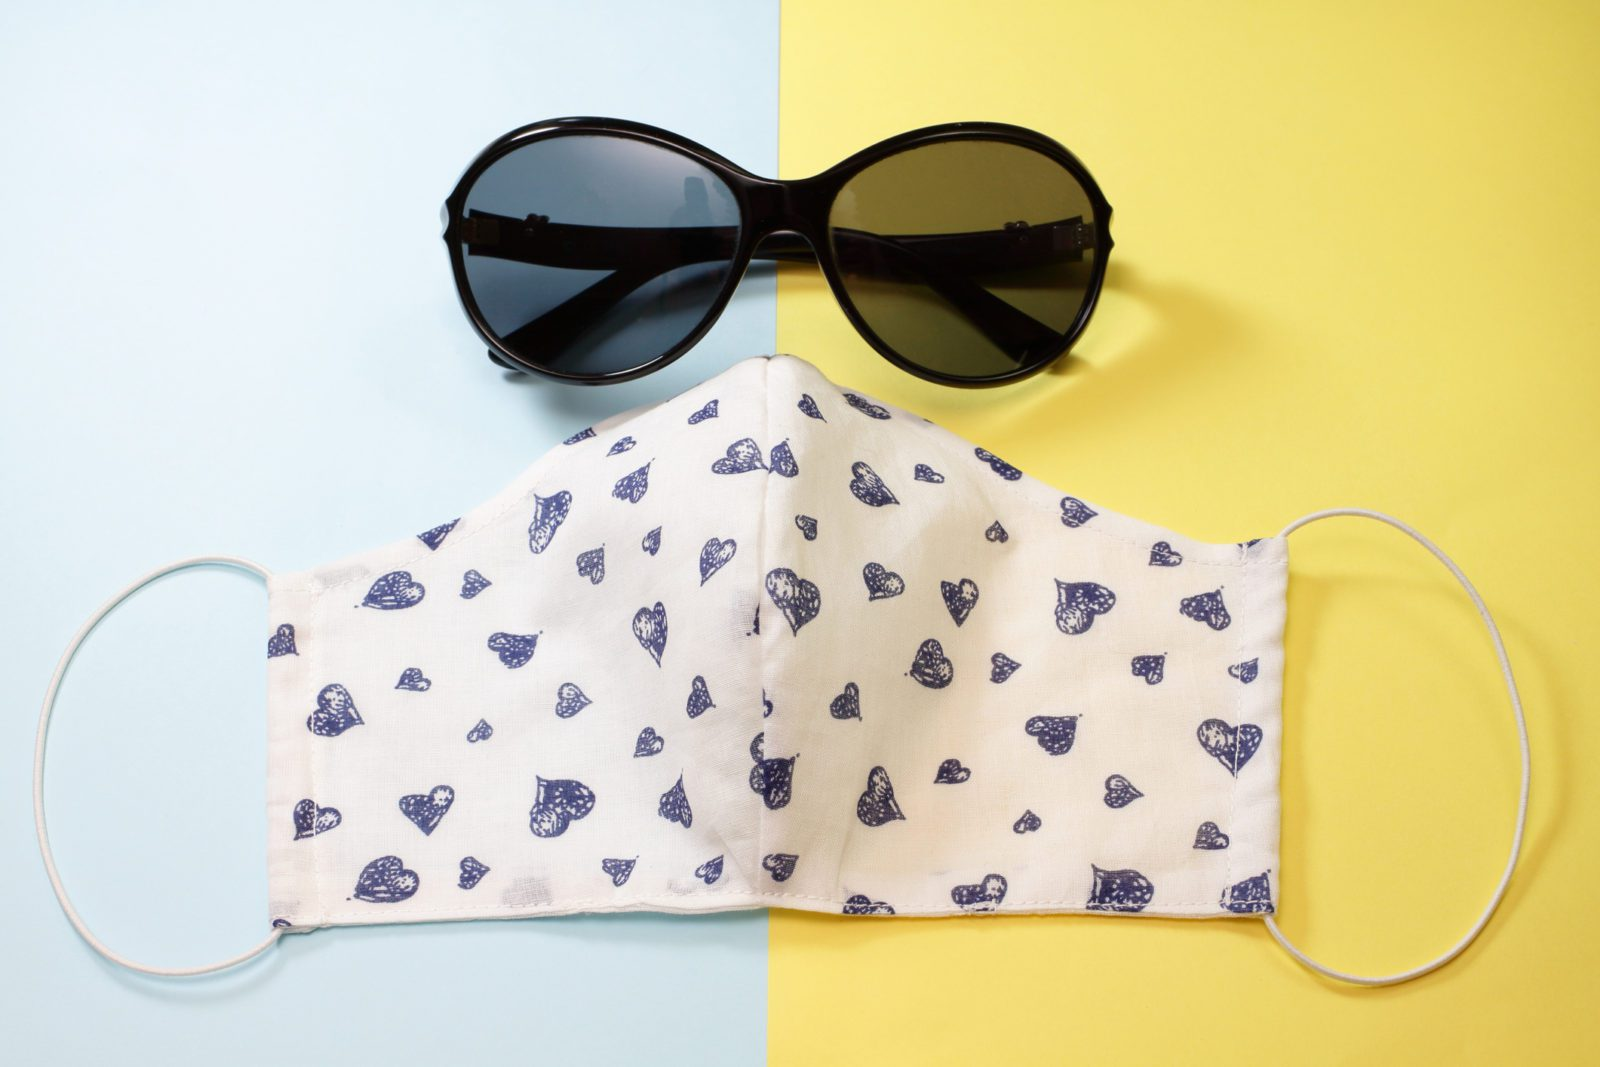 Black sunglasses and a protective face mask. Handmade rag bandage to protect against infection and viruses.